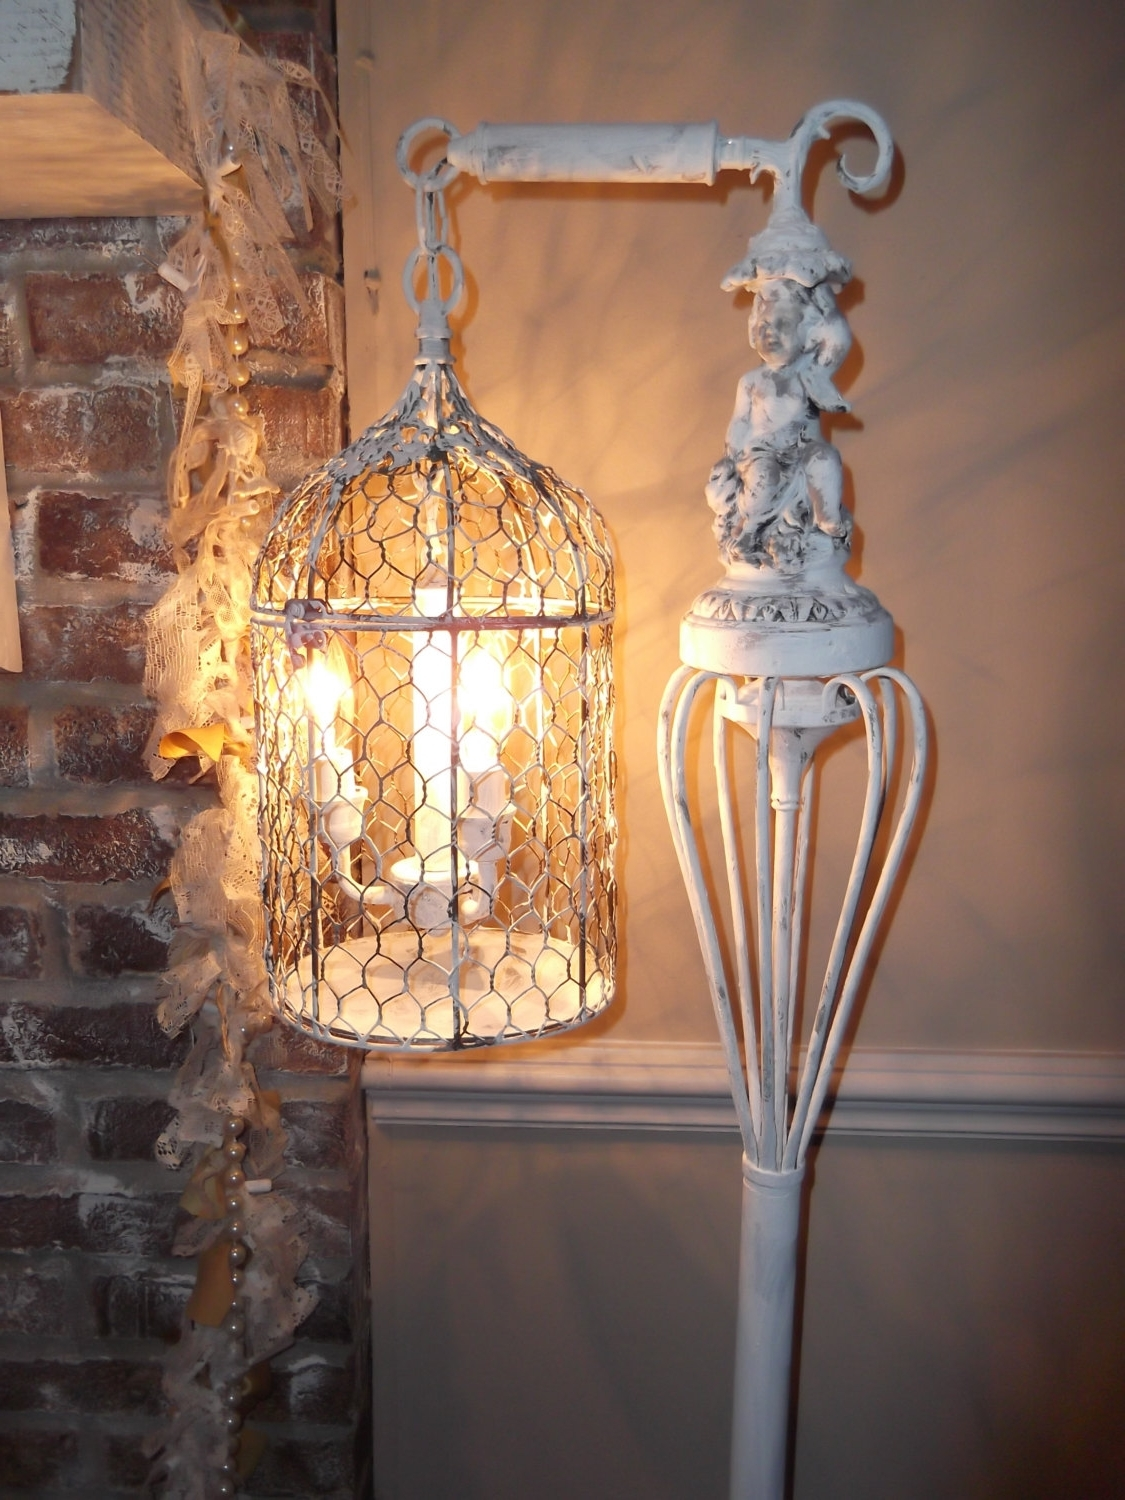 Fashionable Country Chic Chandelier Inside Bird Cage Chandelier Floor Lamp ,vintage Chandelier Bird Cage Light (View 13 of 20)